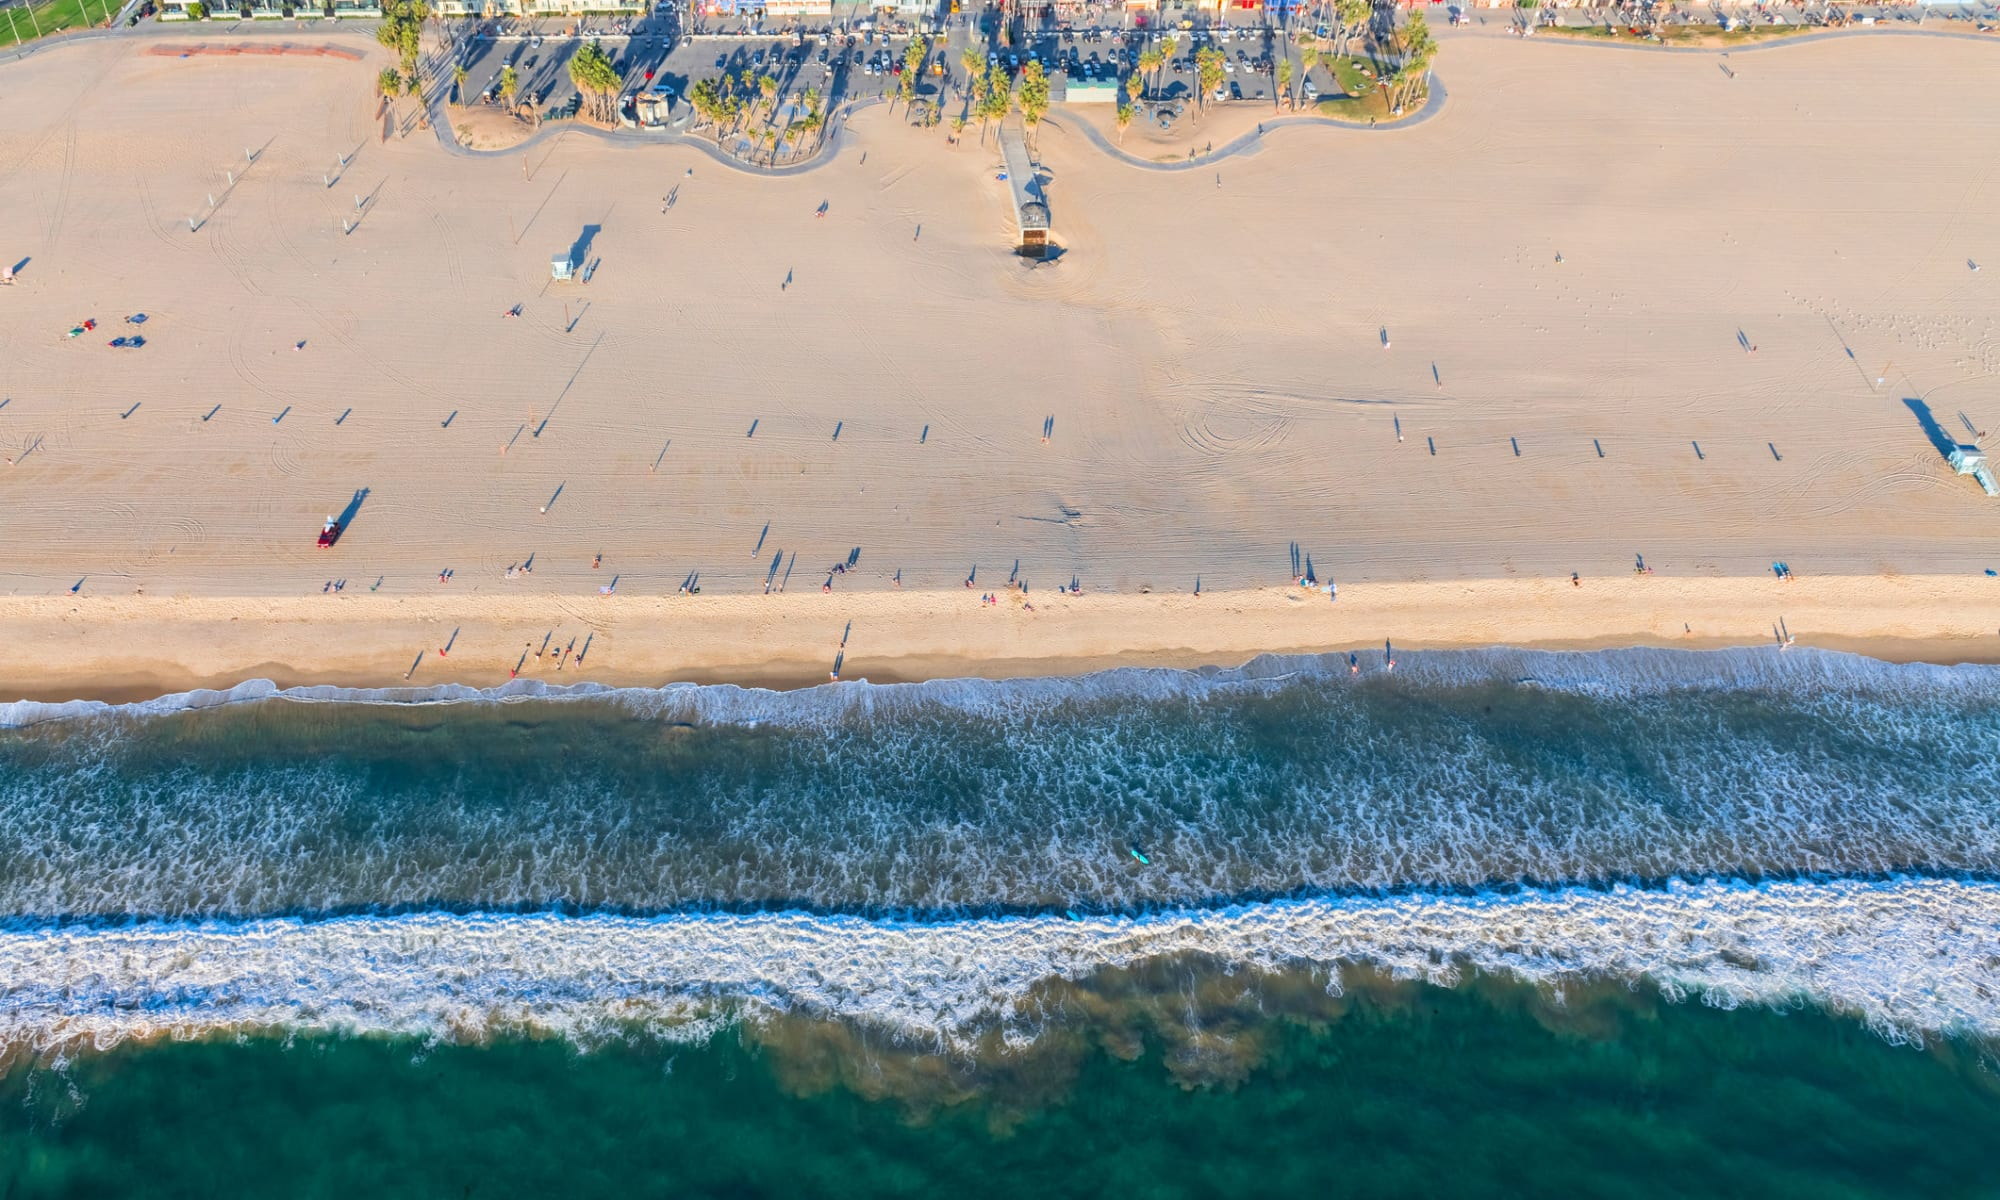 Aerial view of the beach and shoreline near The Meadows in Culver City, California